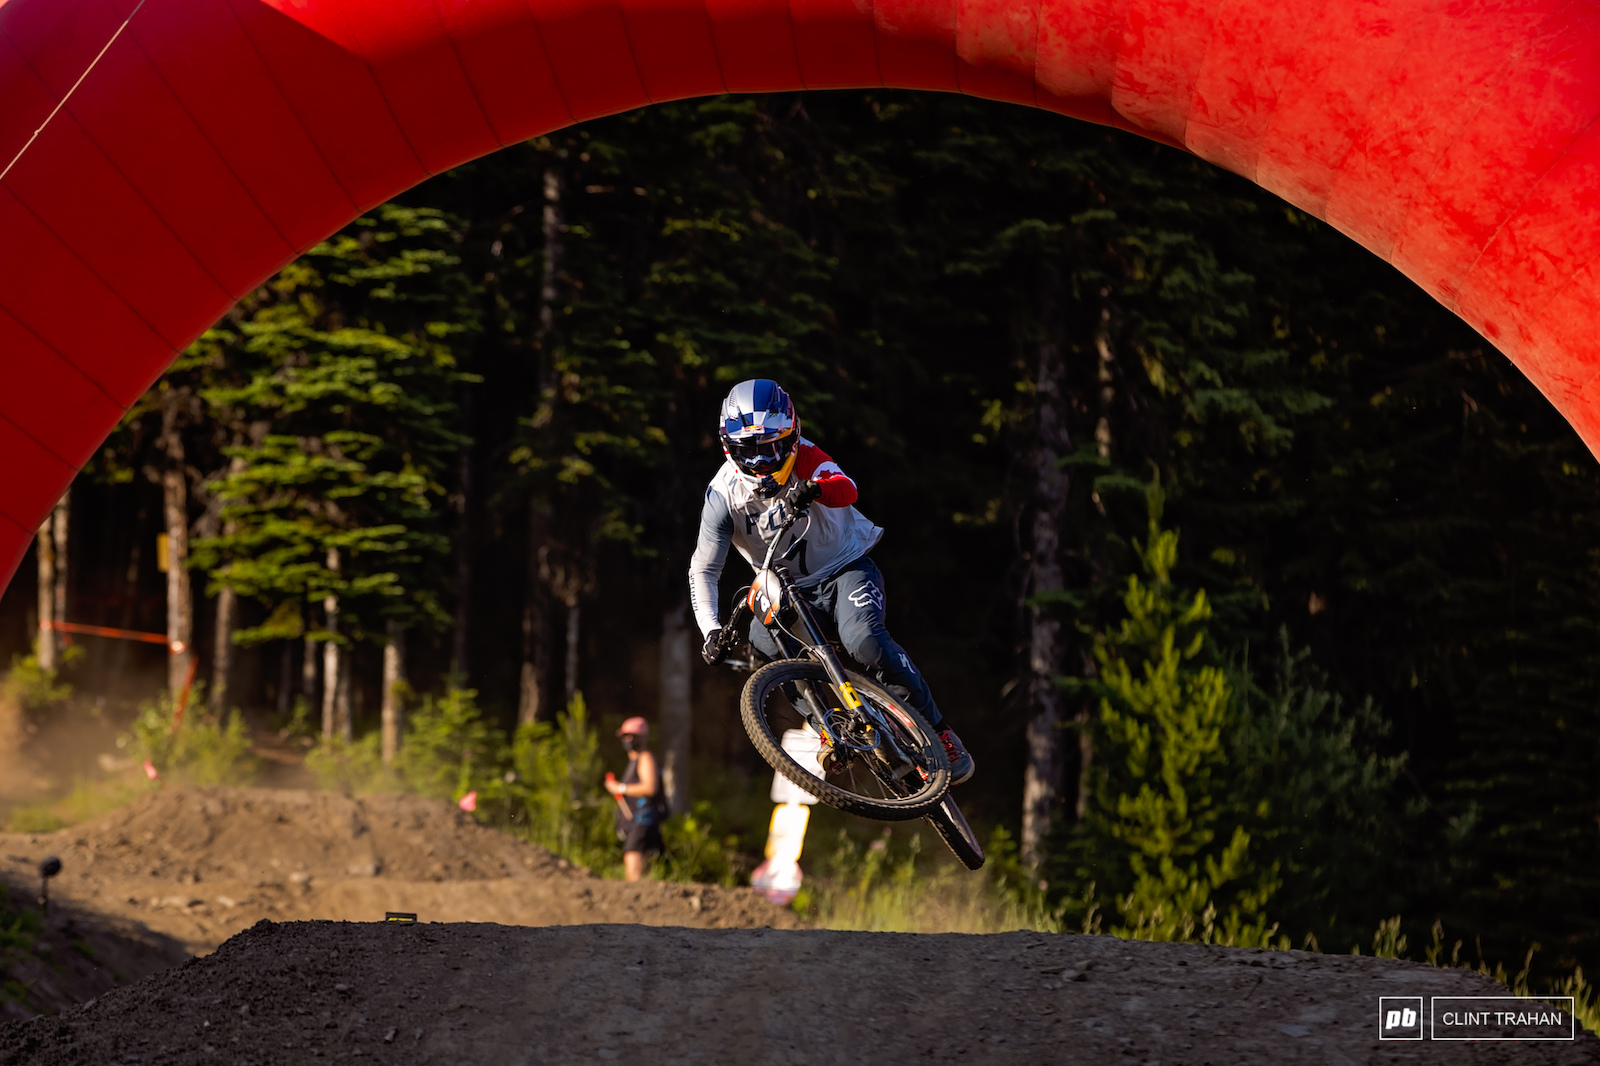 Finn Iles take his second win of the CLIF Crankworx Summer Series and leads all male riders in the standings.